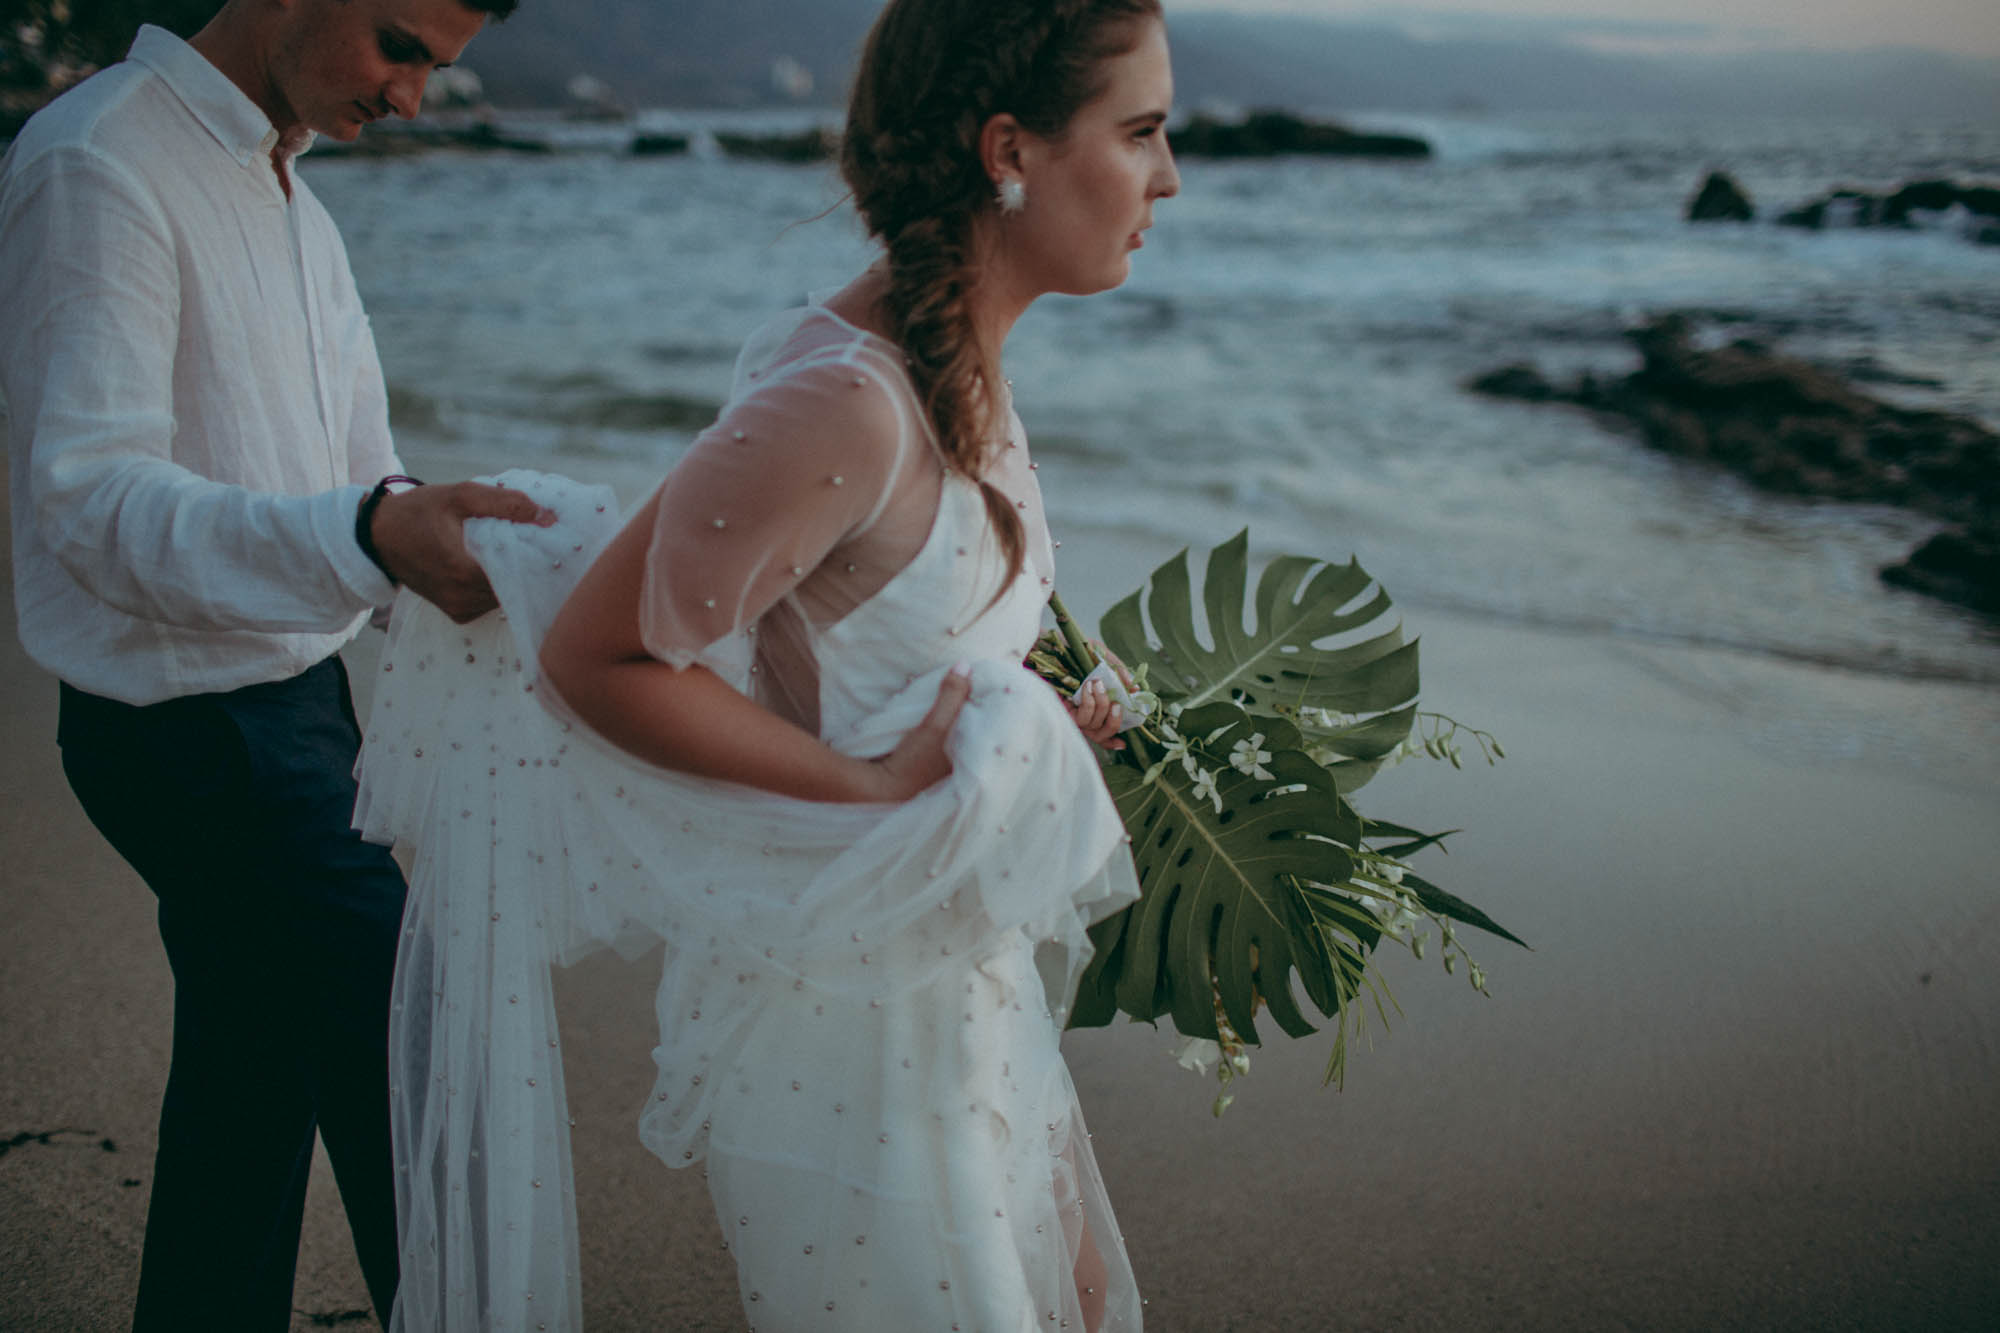 c_m_mexicowedding_destinationphotographer-82.jpg